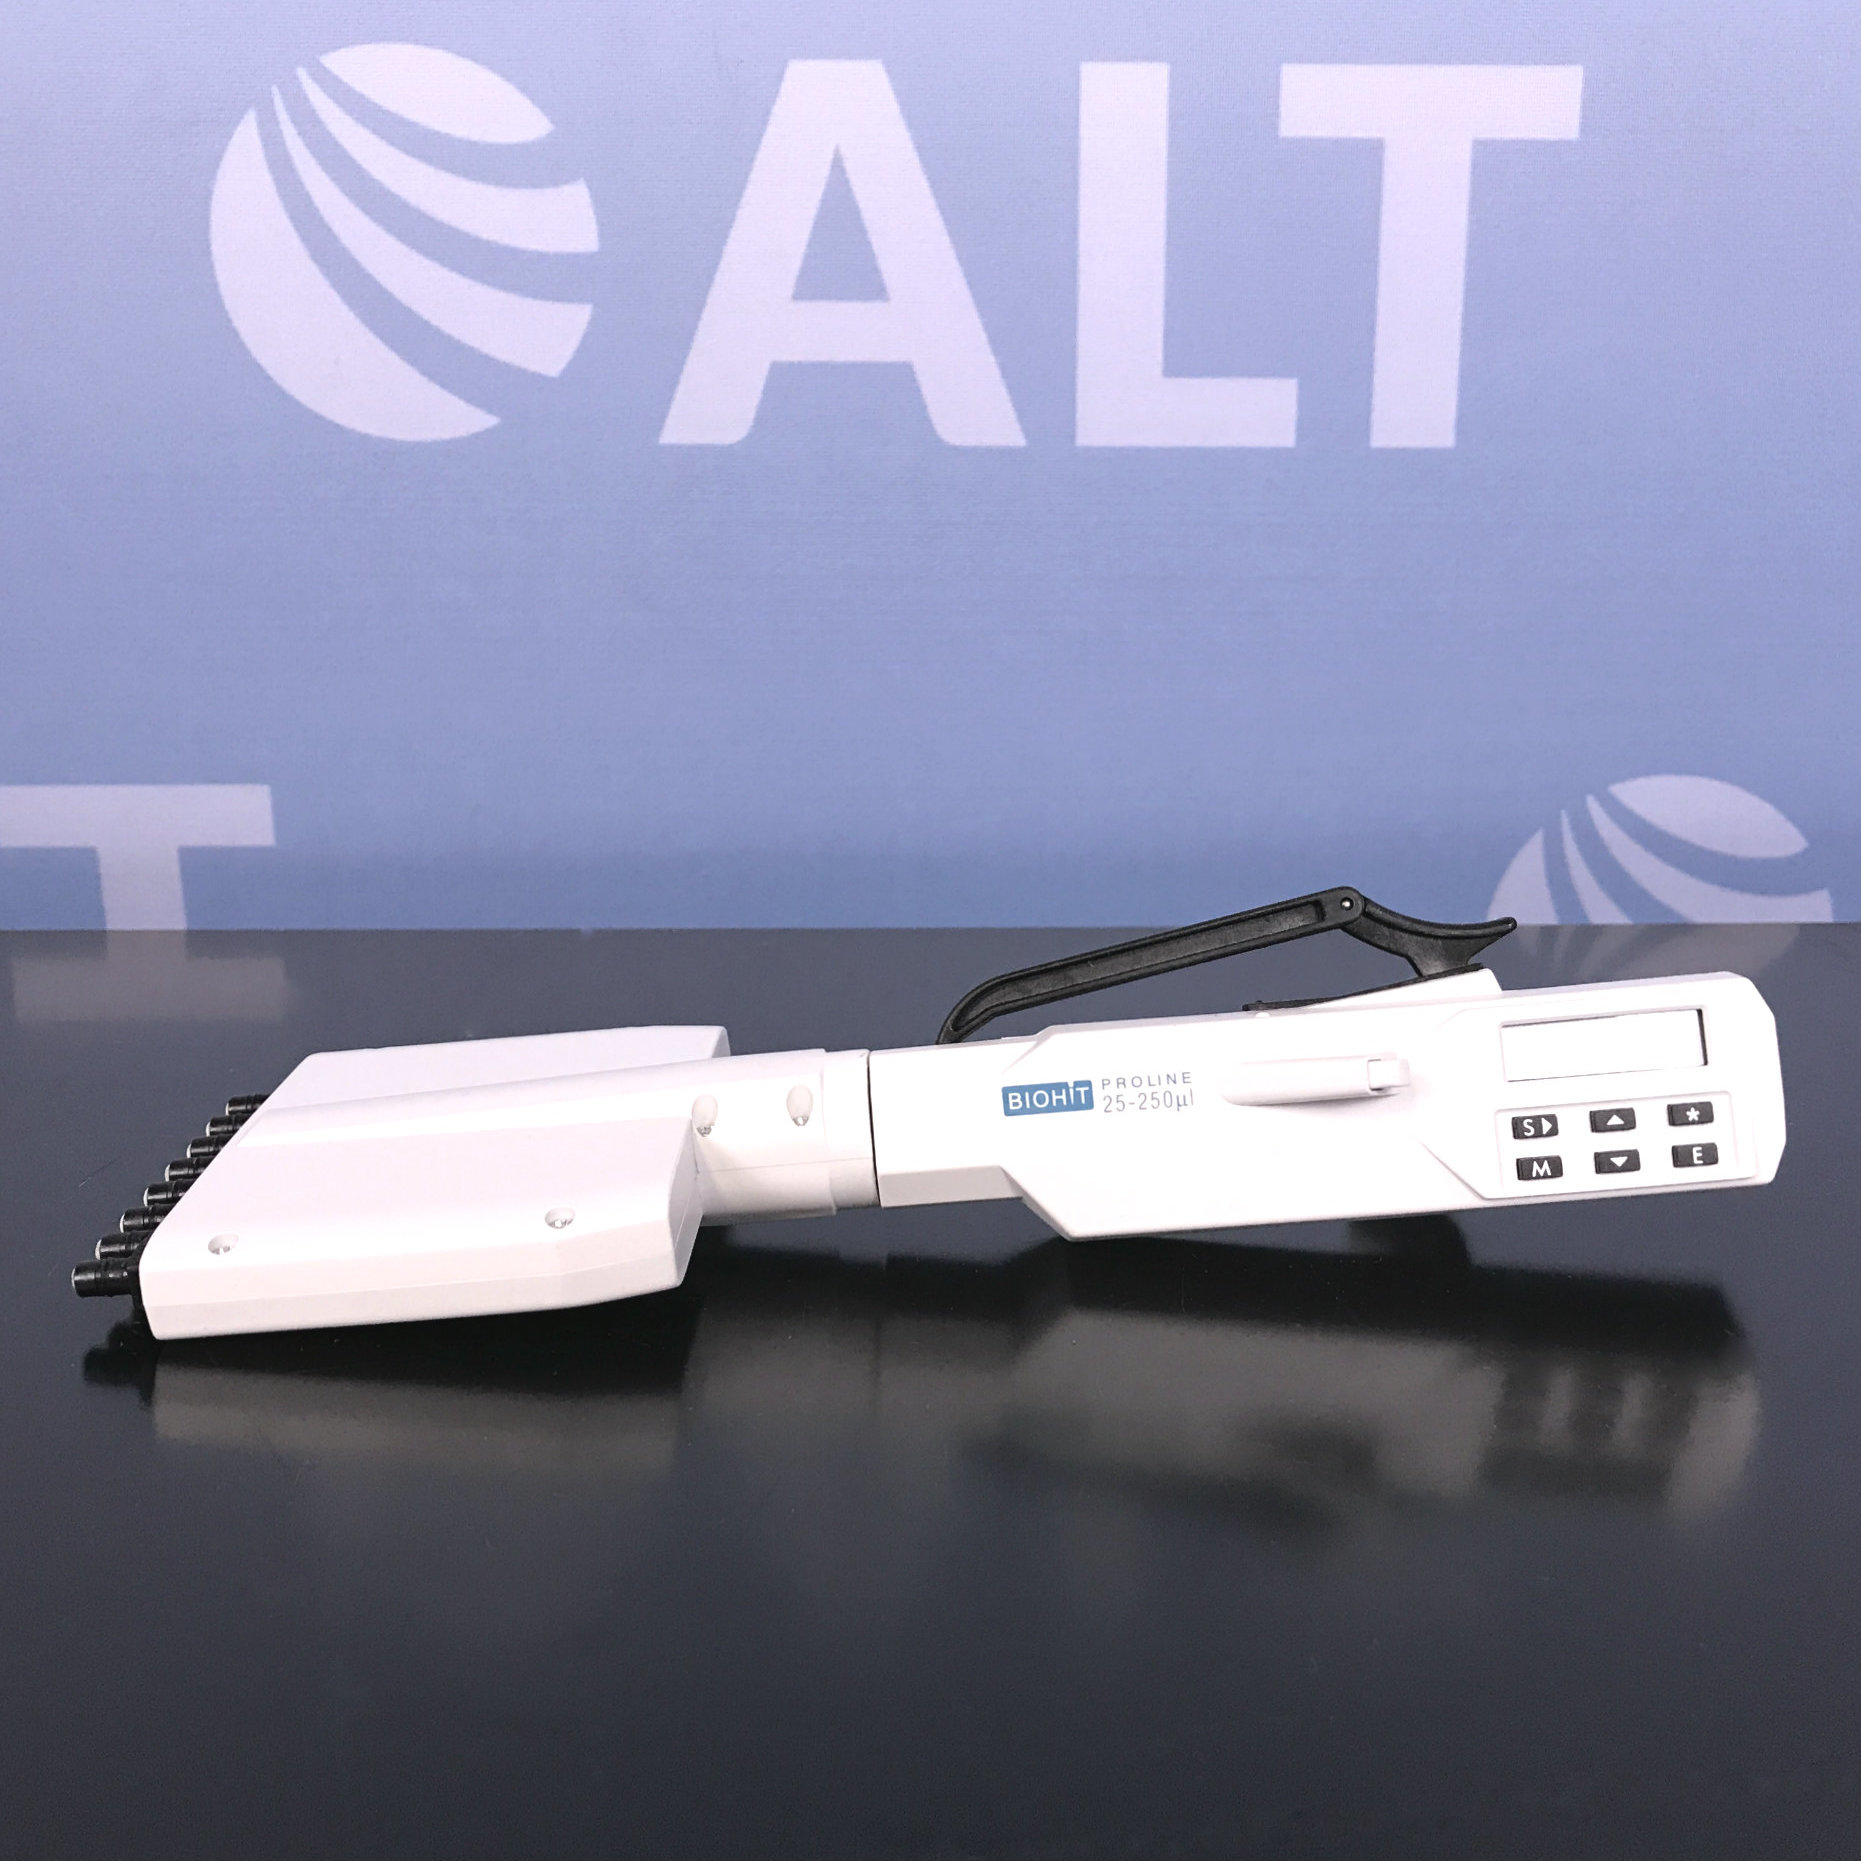 BioHit Proline 8 Channel Electronic Pipette 25-250 uL Image